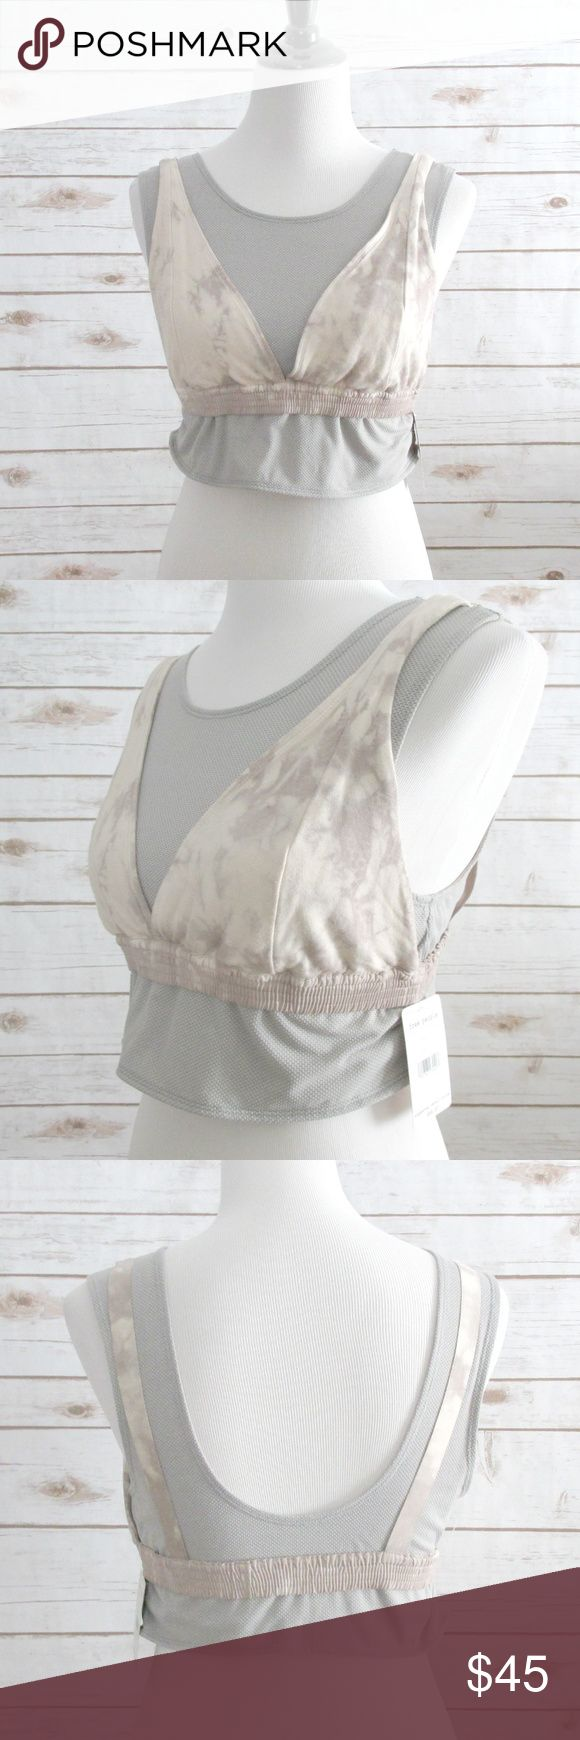 Free People Oasis Yoga Sport Bra Camisole Free People Oasis sports bra camisole combo.  The top has a layered camisole look with a soft bralette on the outside.  It is soft to the touch. I would recommend for yoga or low impact activities. Straps are not adjustable.  Condition: NWOT Type: Bra Style:  Sports bra Cami Brand: Free People Movement Size:  L Color: Peach (Gray Beige Tan) Material: Rayon Spandex  DD0.5:201801231035:1000:002F Free People Intimates & Sleepwear Bras